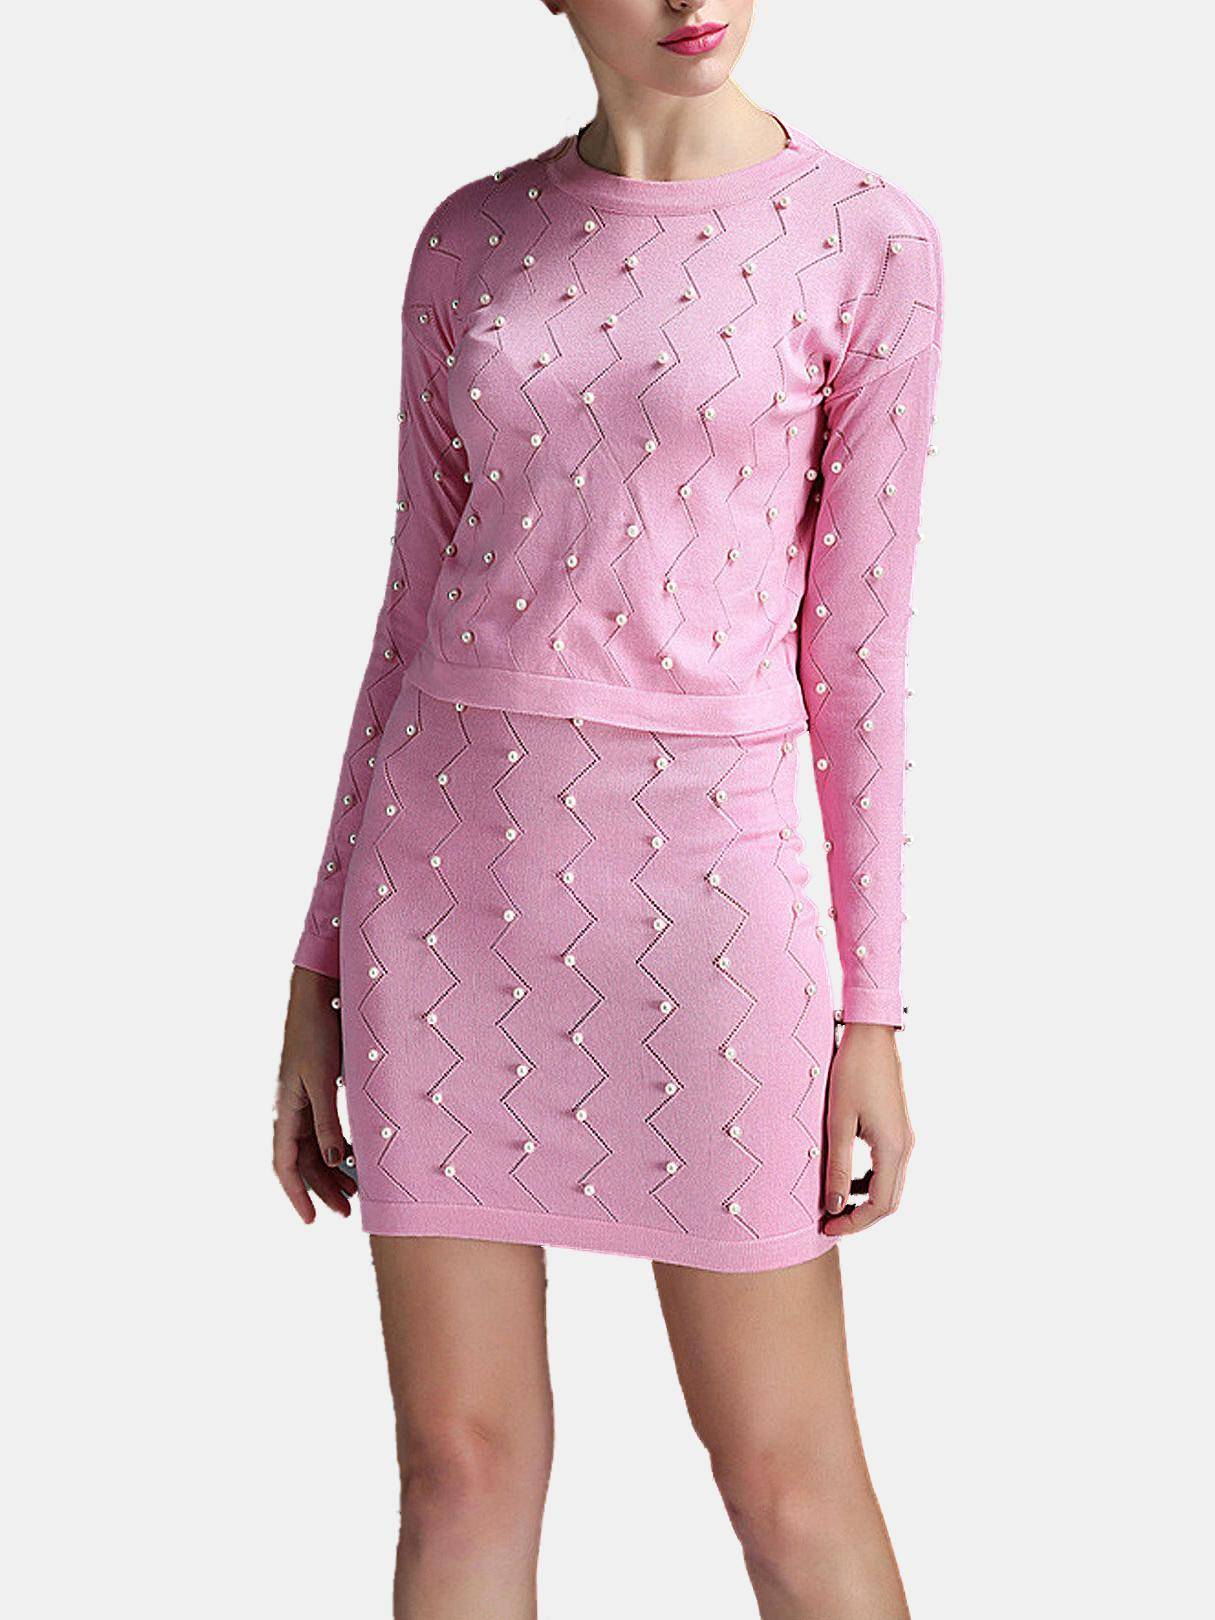 Pink Wave Beaded Knitted Suit stainless steel meat grinder 2 cutting plates electric moedor de carne 2 types sausage stuff makers kitchen appliance meat grind